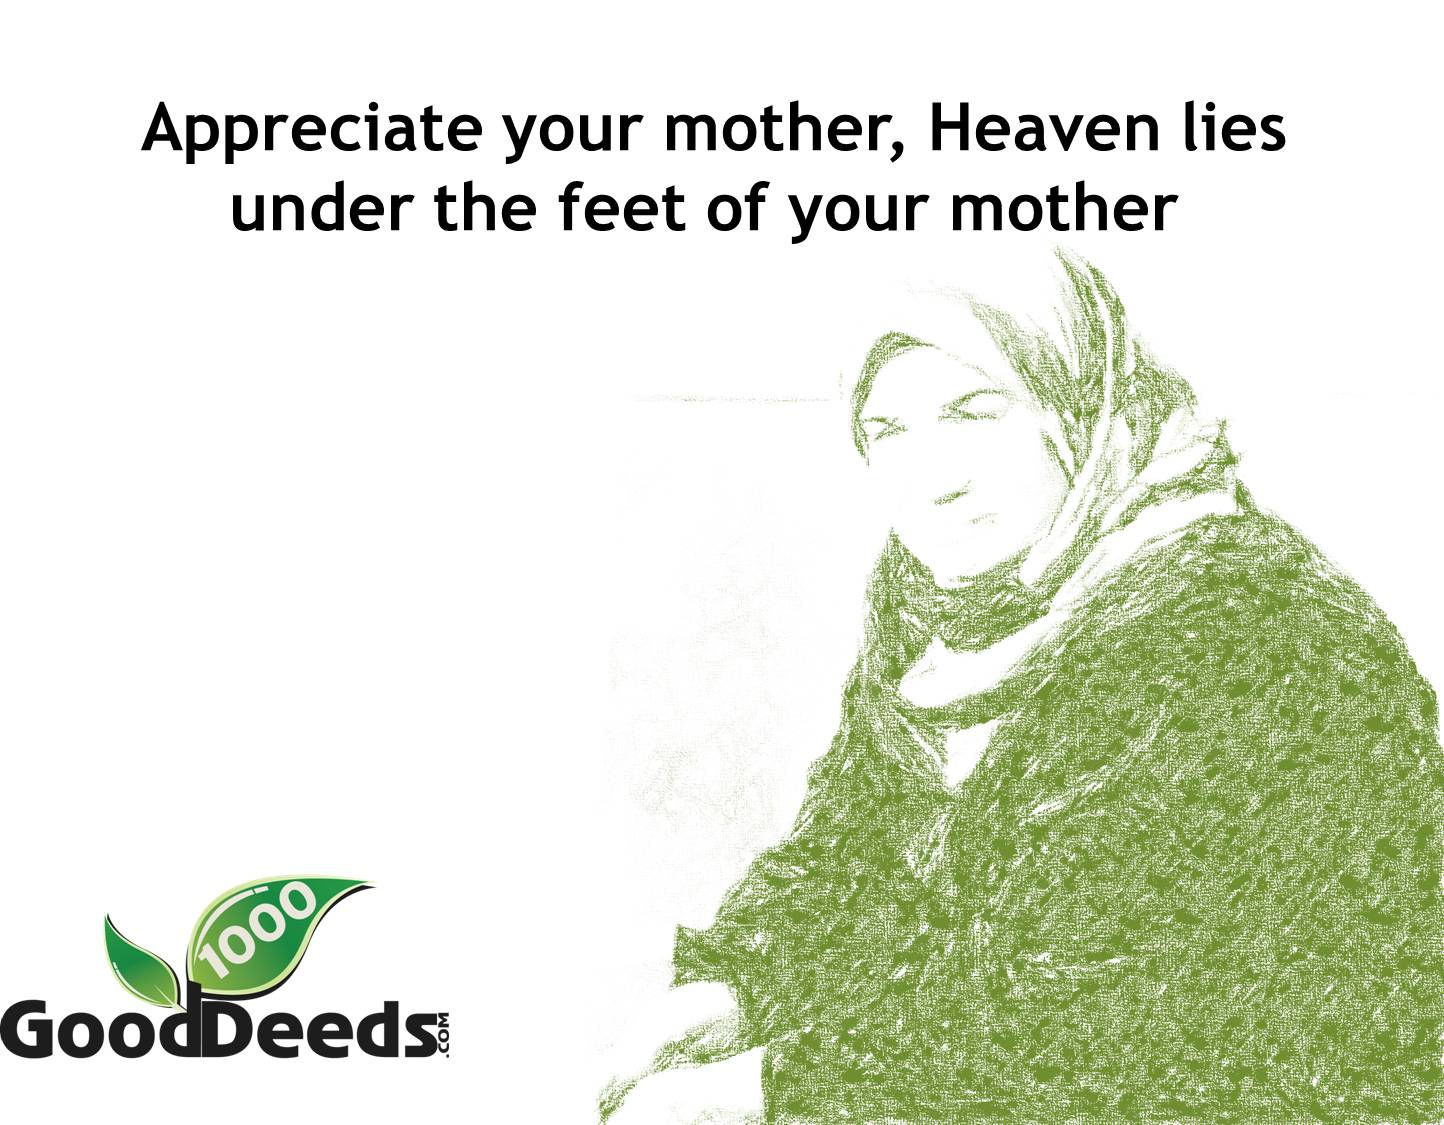 Good Deed: #32 Respect and appreciate your mother | 1000